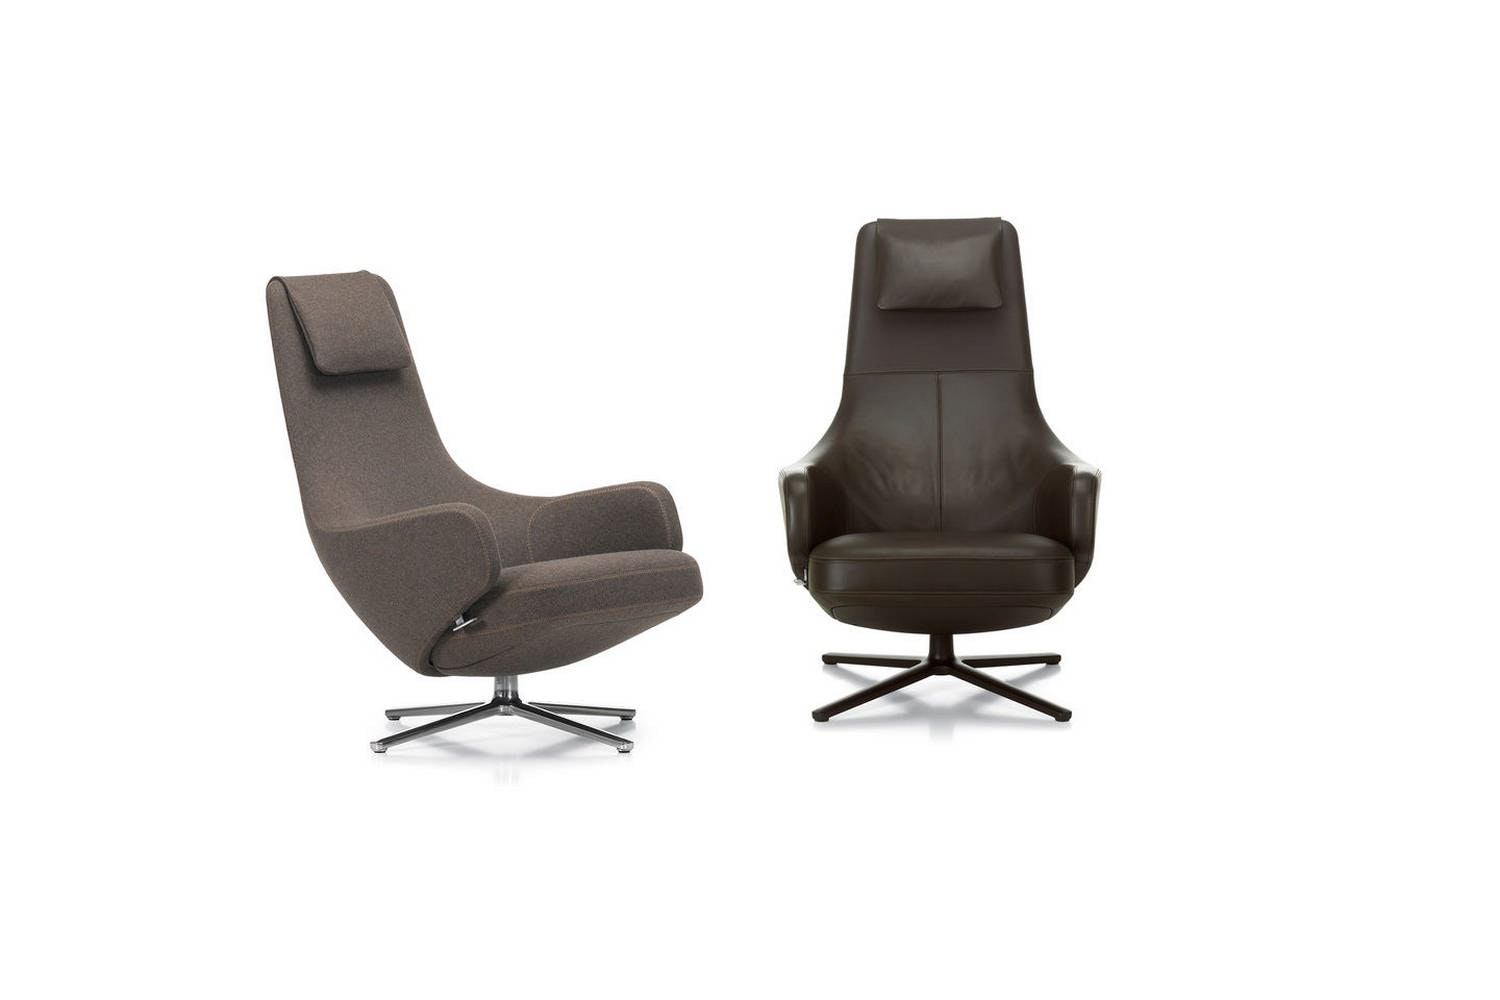 Repos & Grand Repos Armchair & Ottoman by Antonio Citterio for Vitra